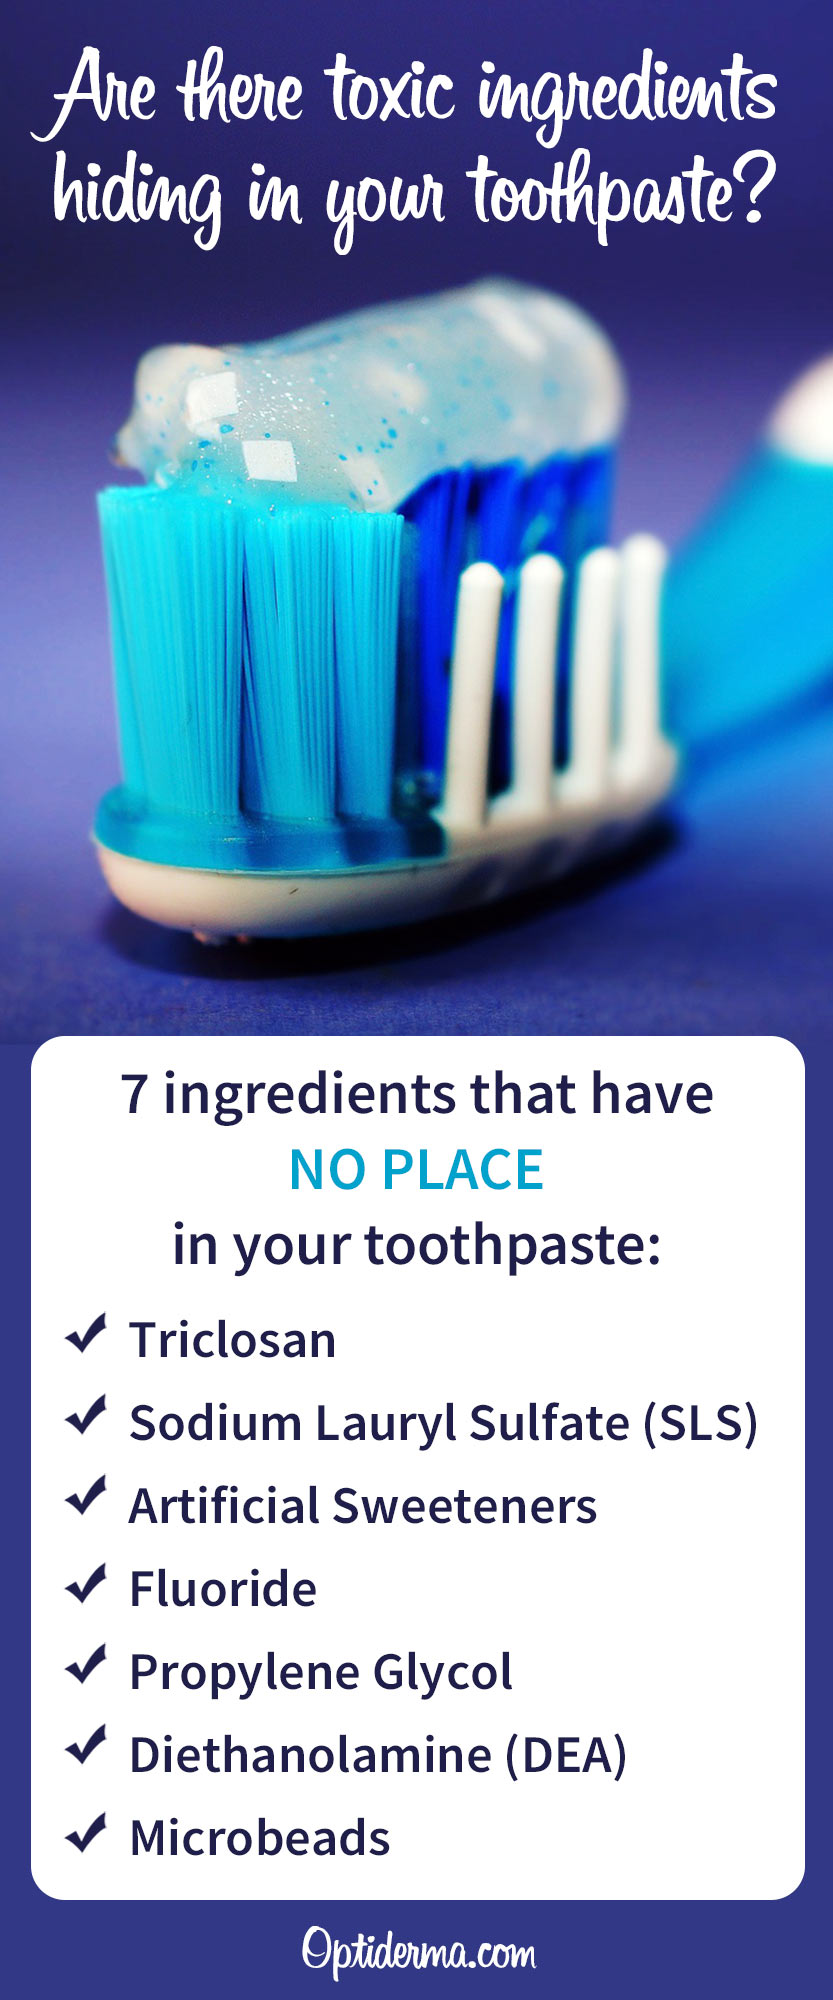 Toxic Ingredients in Toothpaste